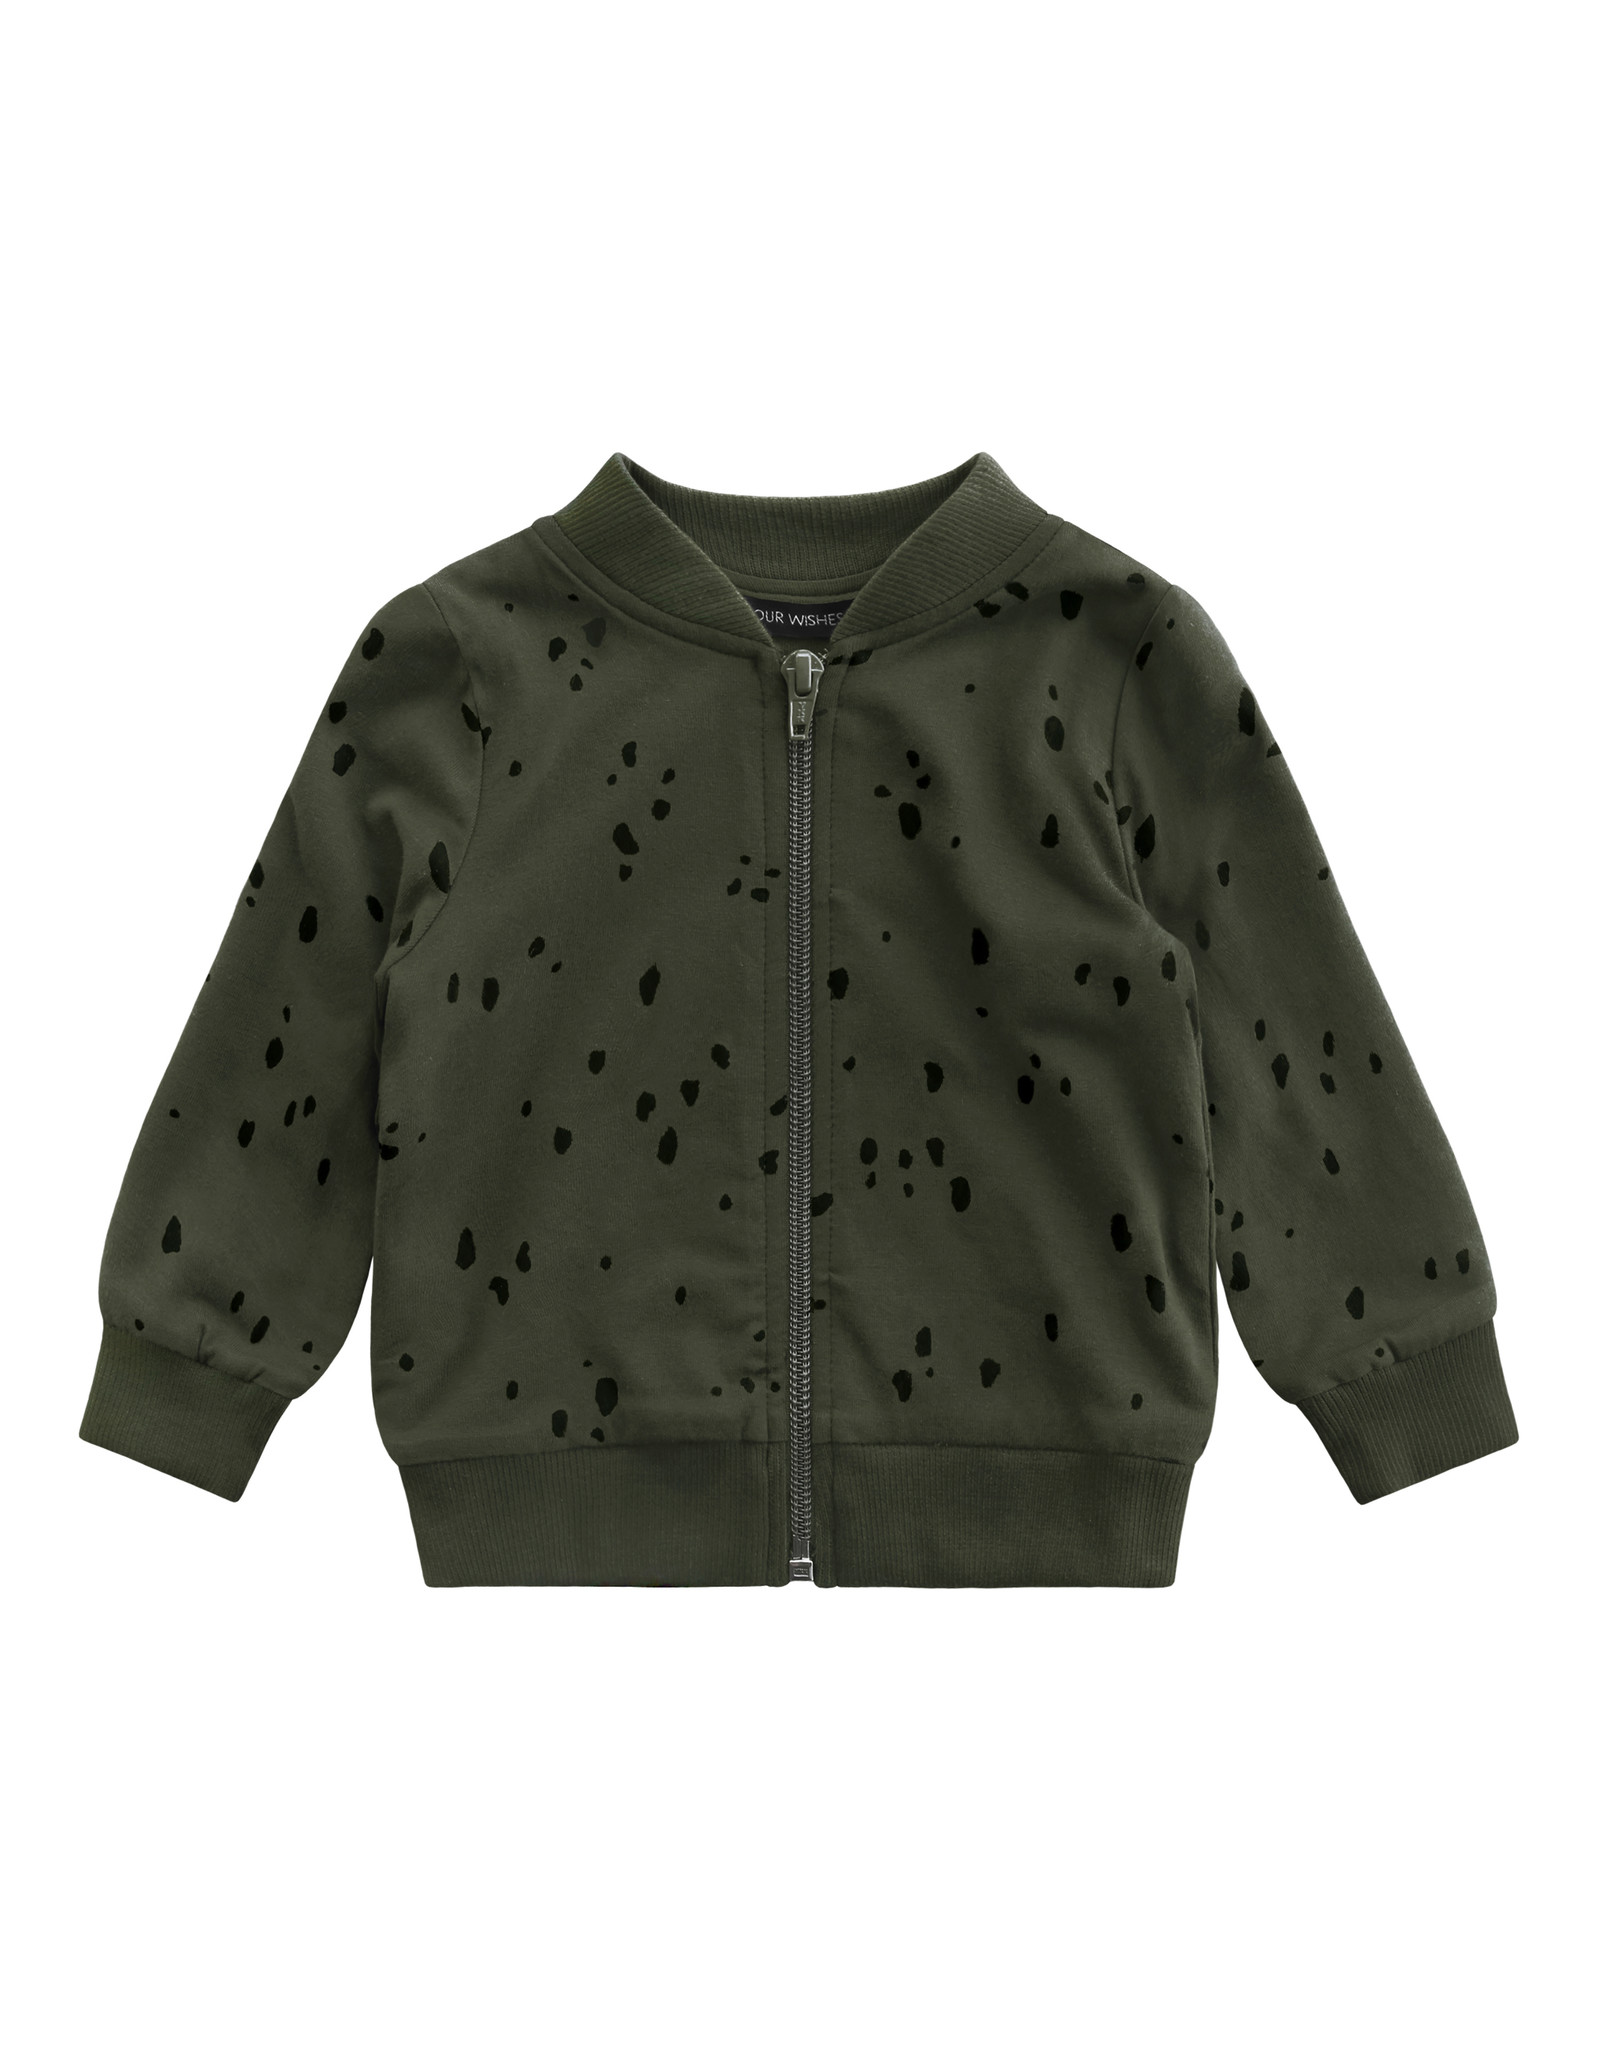 Your Wishes YW | Splatters | Bomber | Desk Green